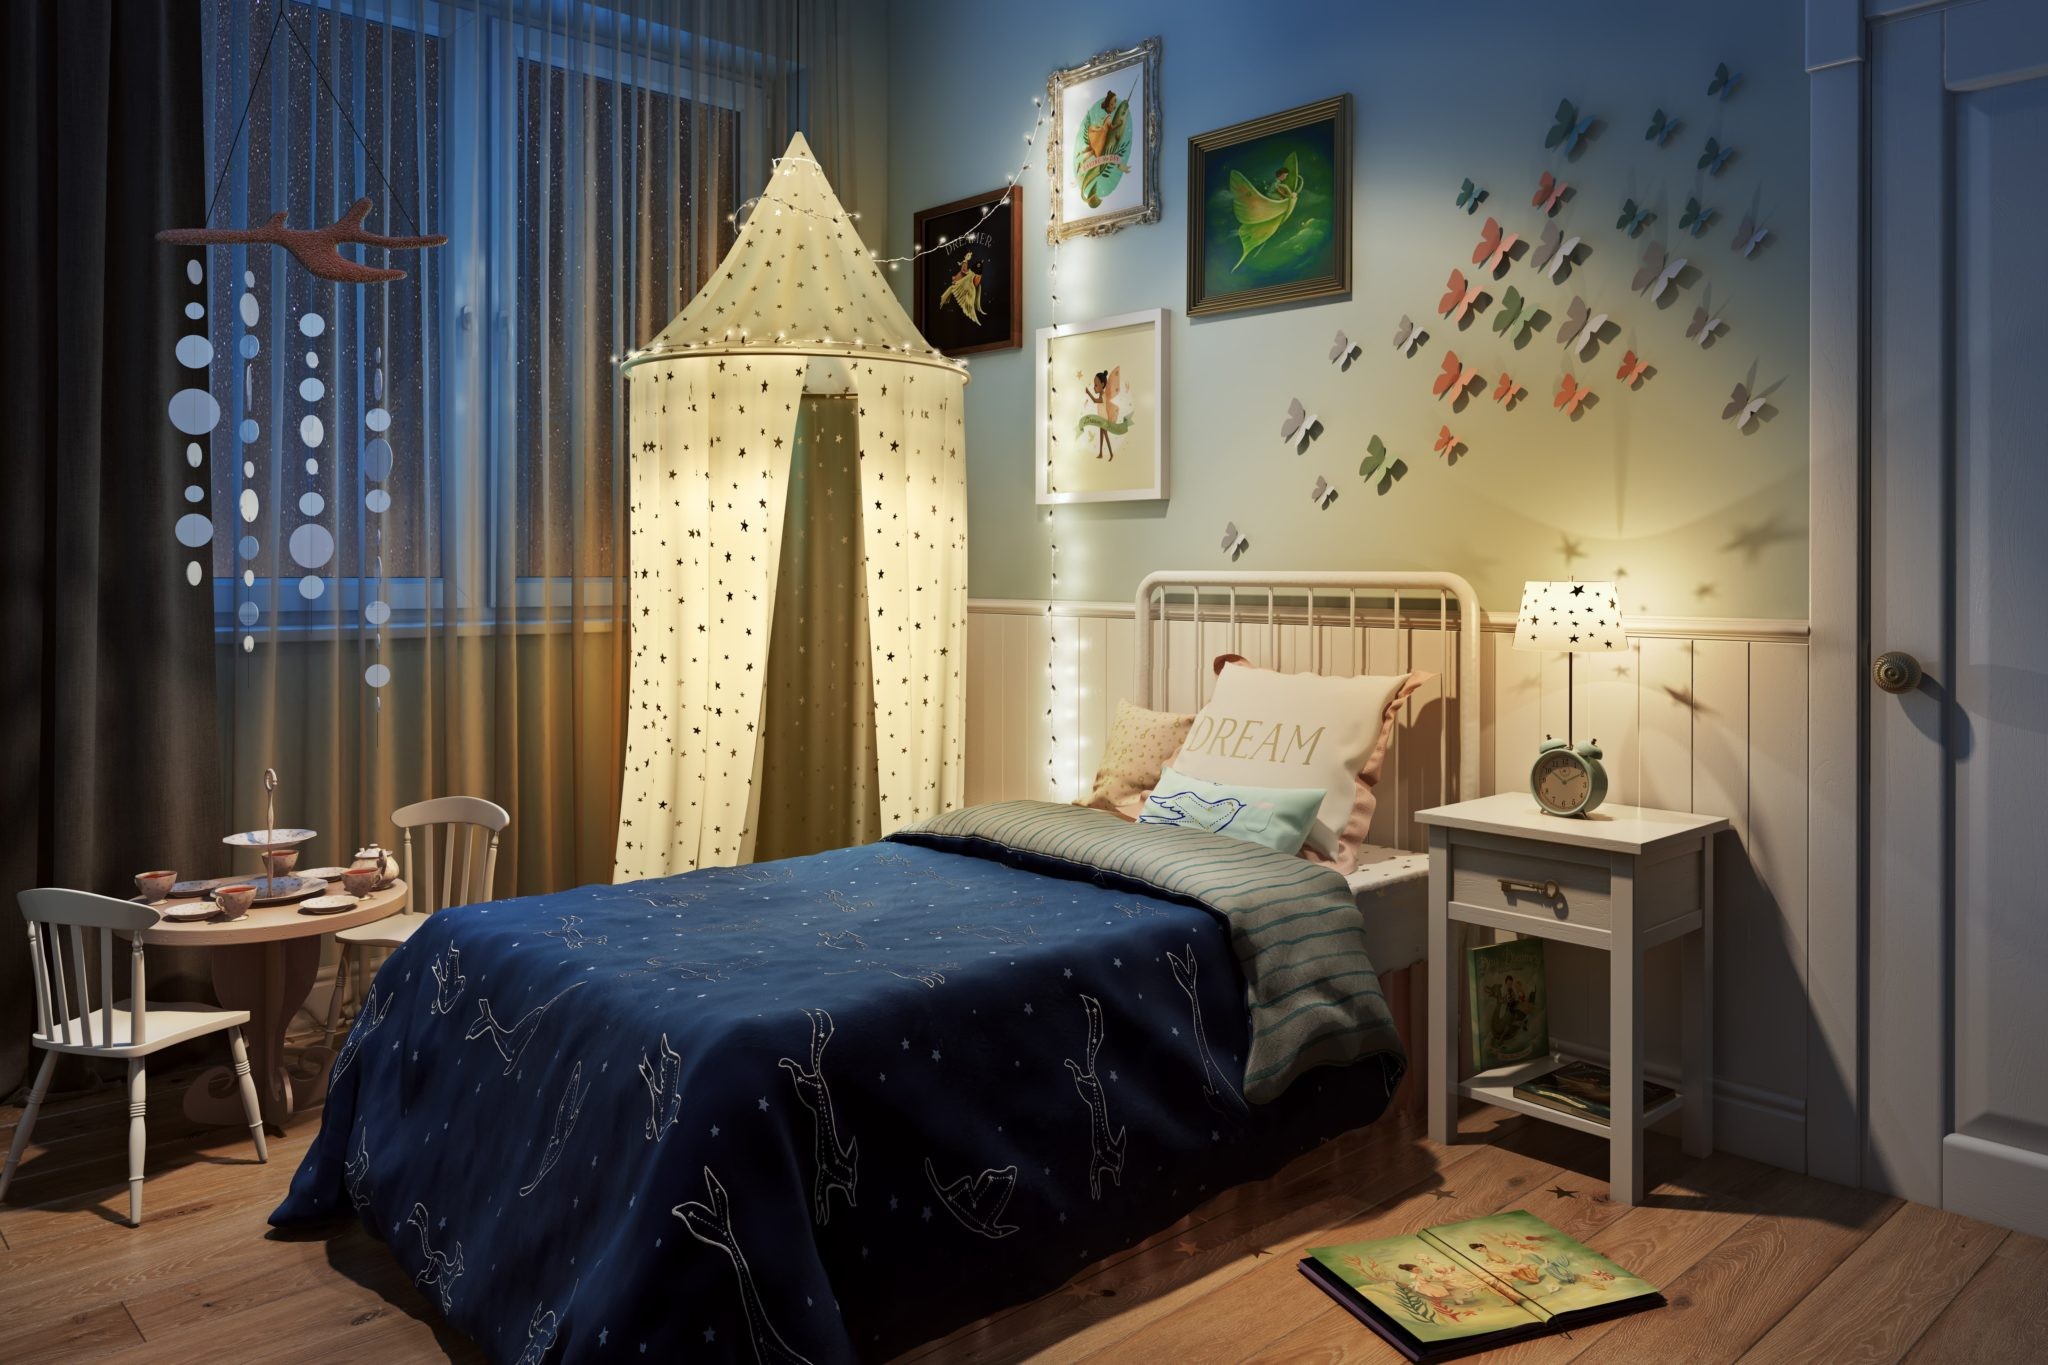 Artistic Three-Dimensional Rendering For A Creative Childroom Design: Preview